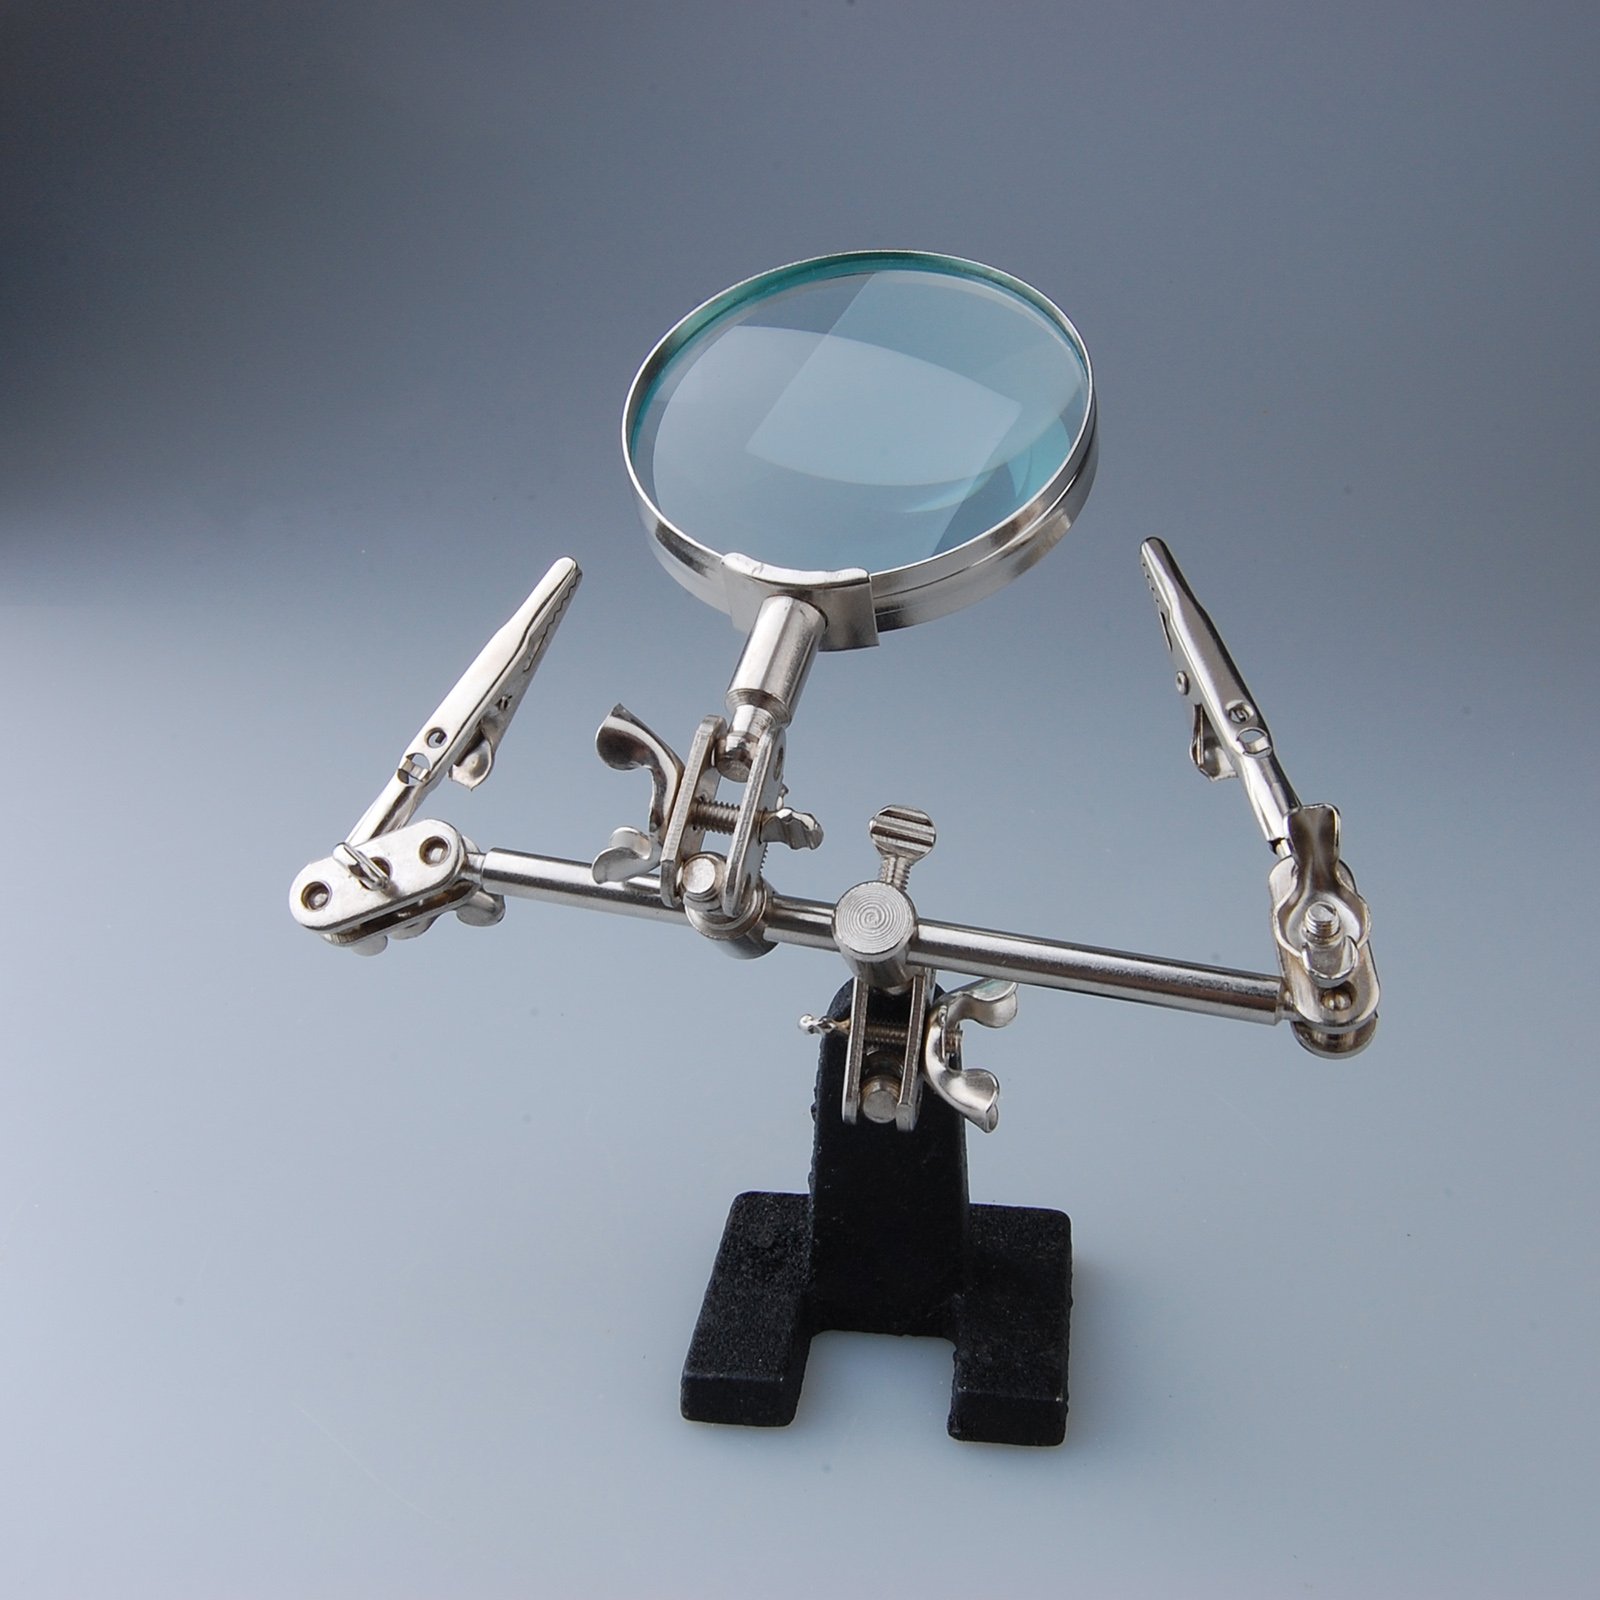 Desk Magnifying Glass : Us desk mounted magnifying glass helping hands